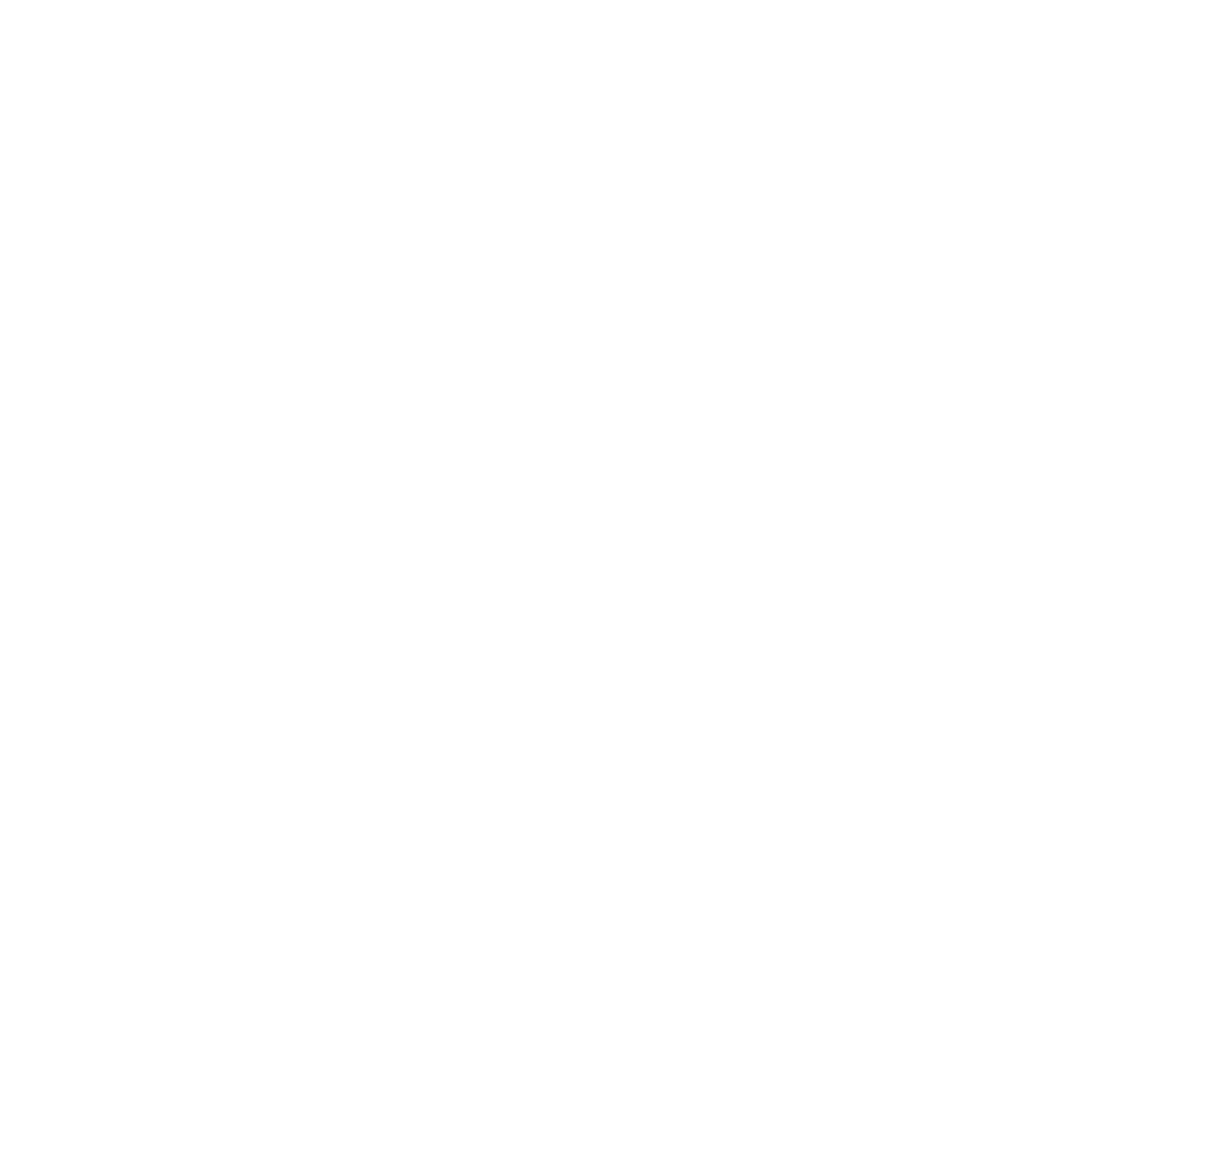 Pier 23 Cafe Restaurant & Bar